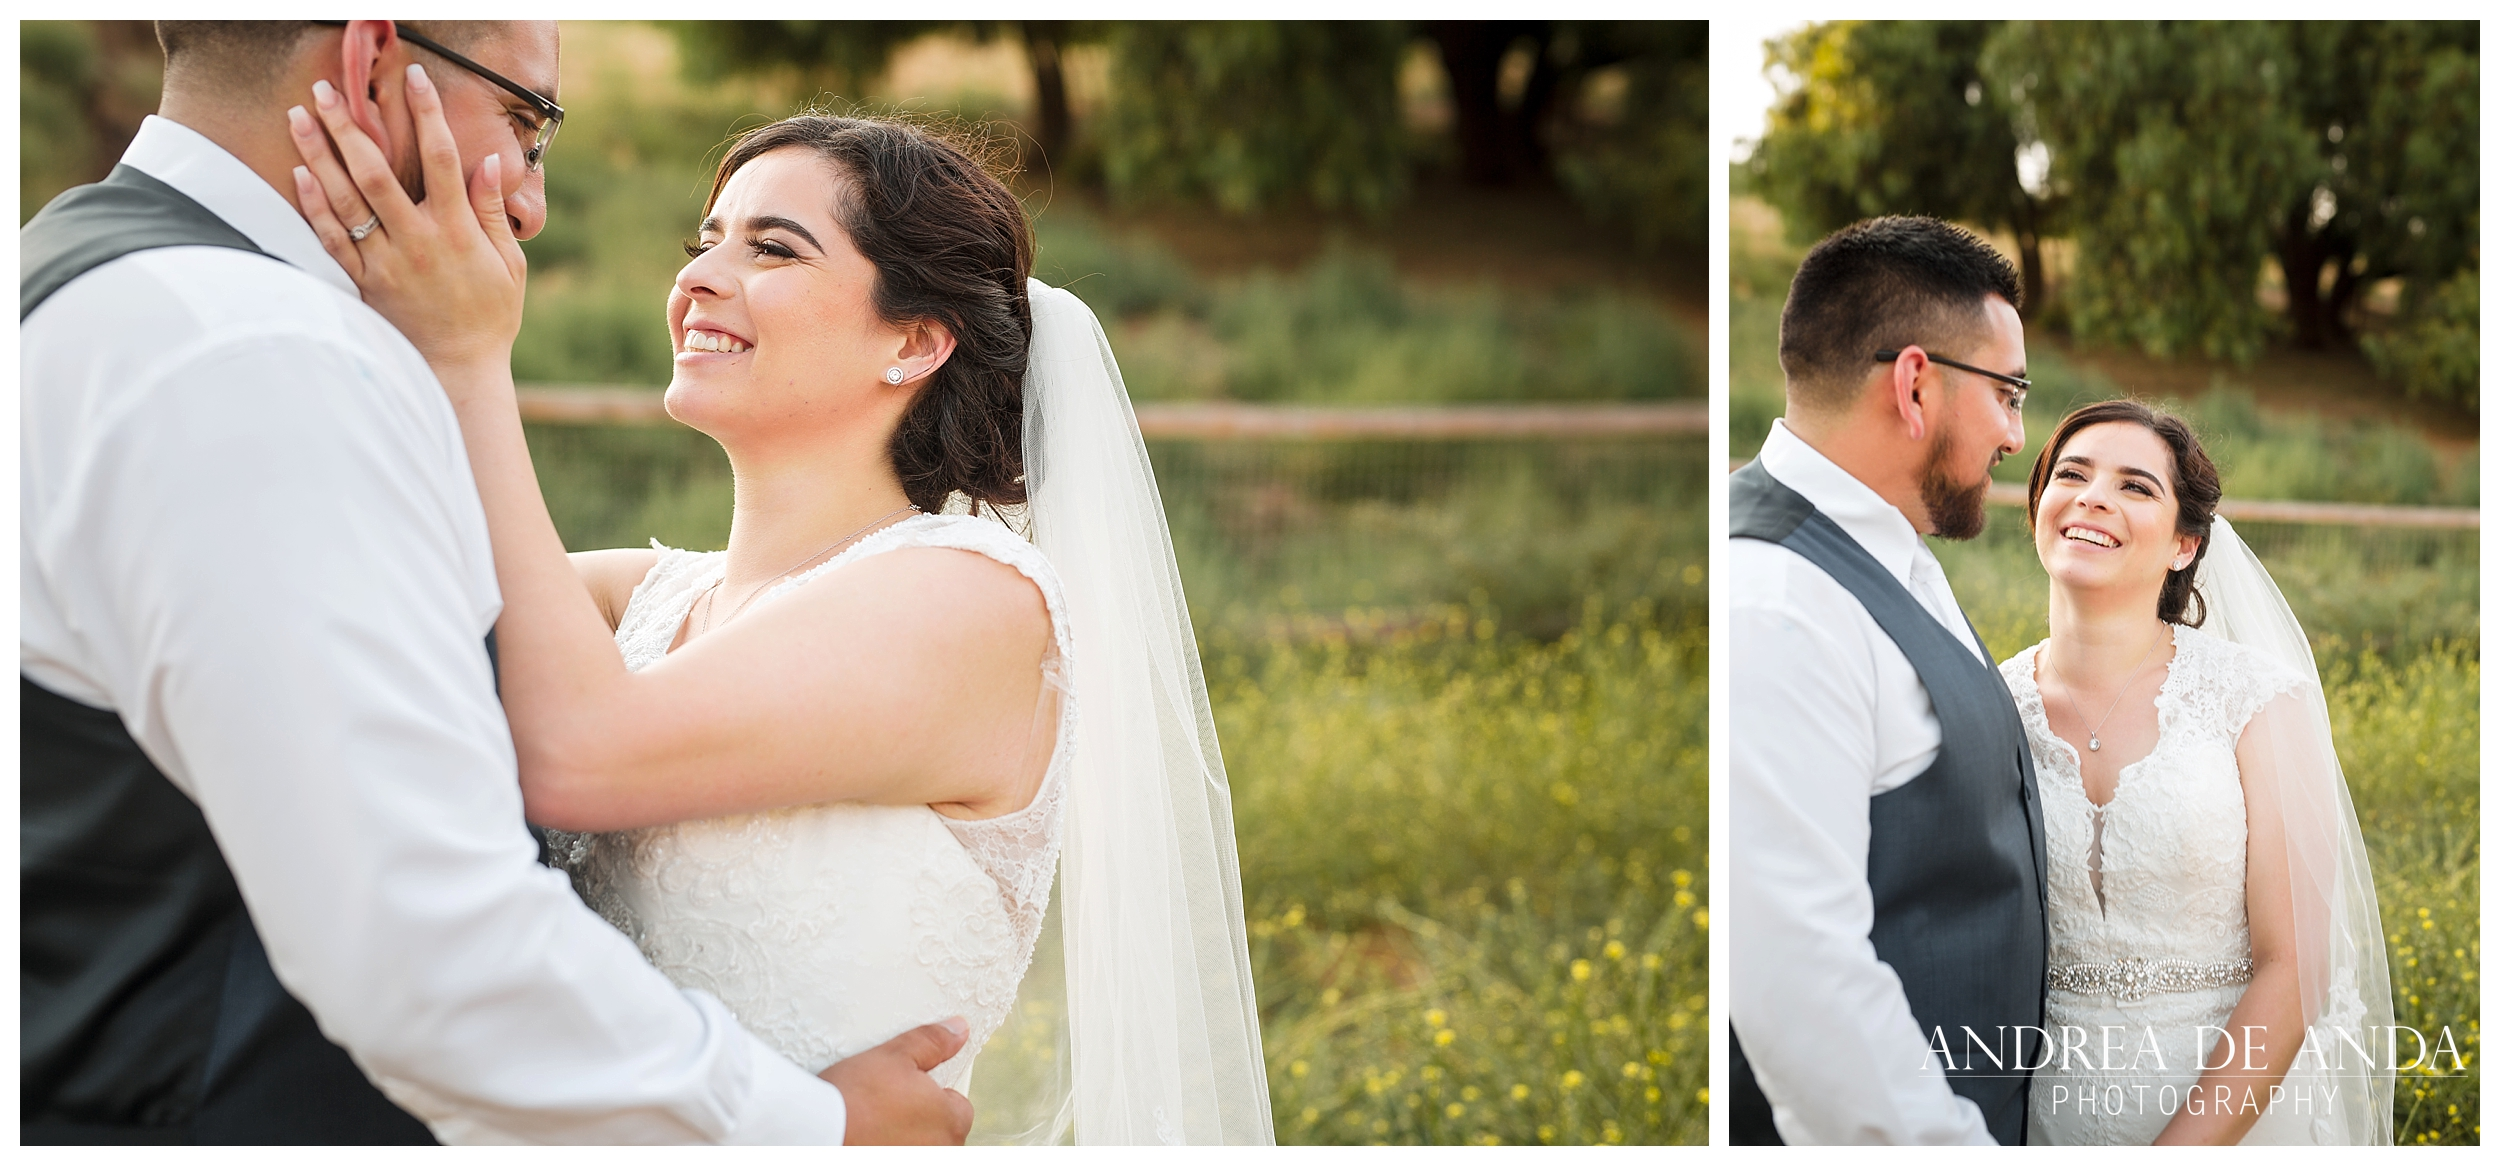 San Jose Wedding Photograhy by Andrea de Anda Photography__0022.jpg